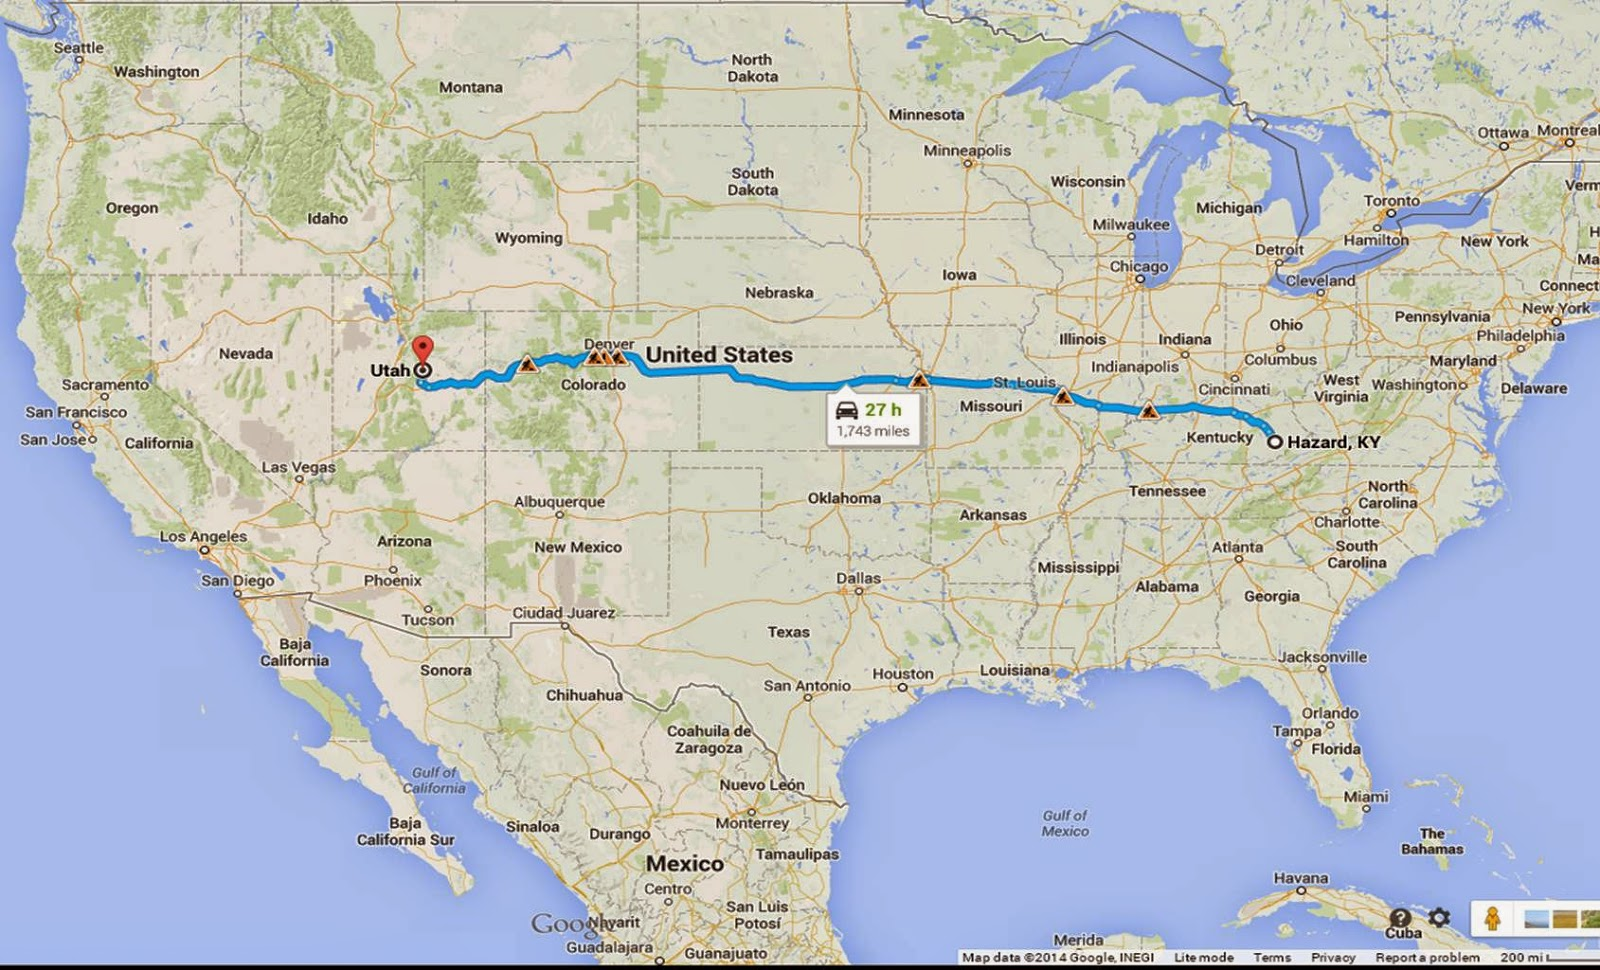 Google maps - Kentucky to Utah